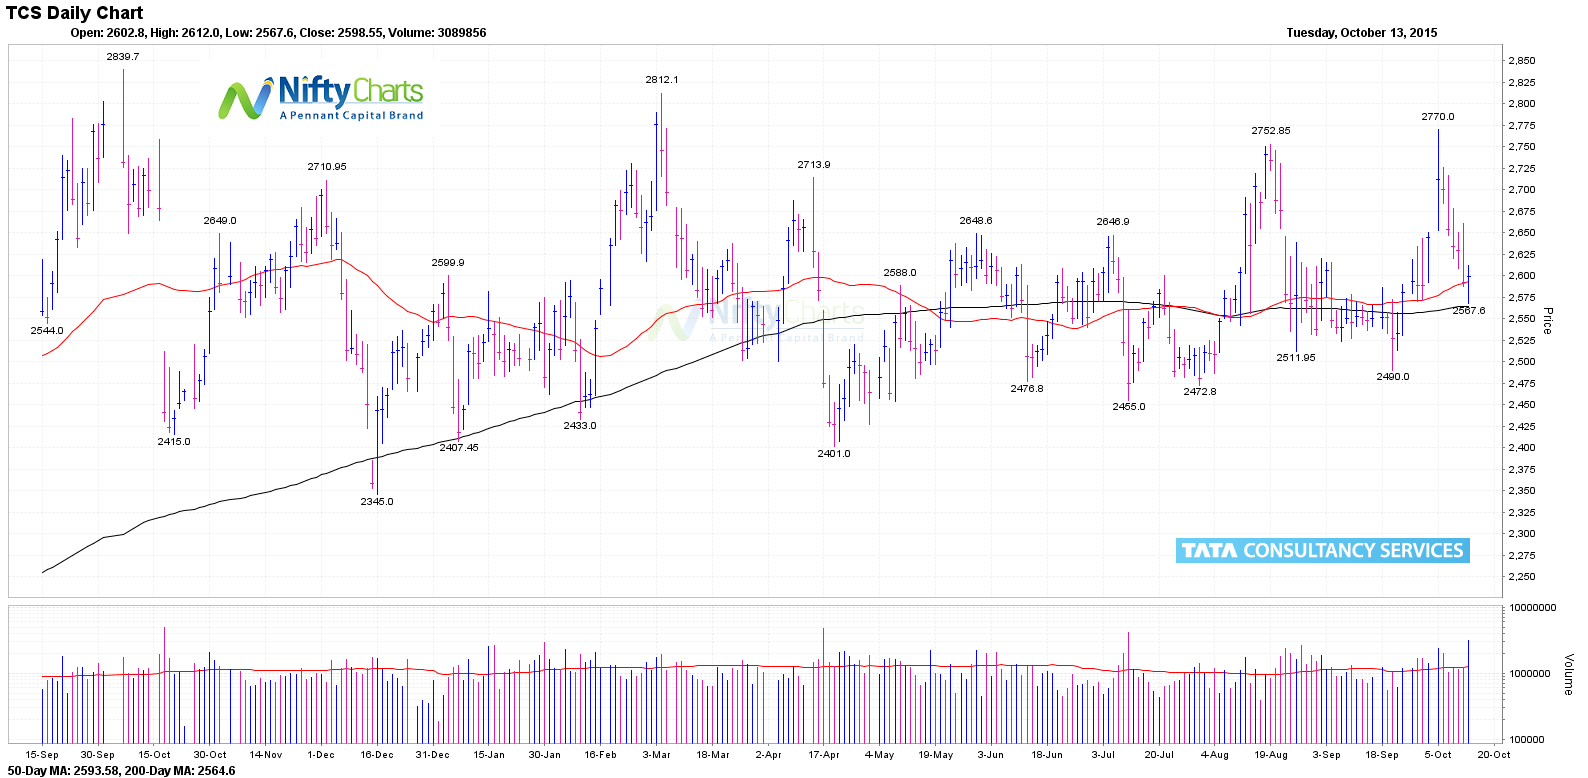 Tcs meets q2 profit estimates revenue growth lags yet again tcs daily chart nvjuhfo Choice Image